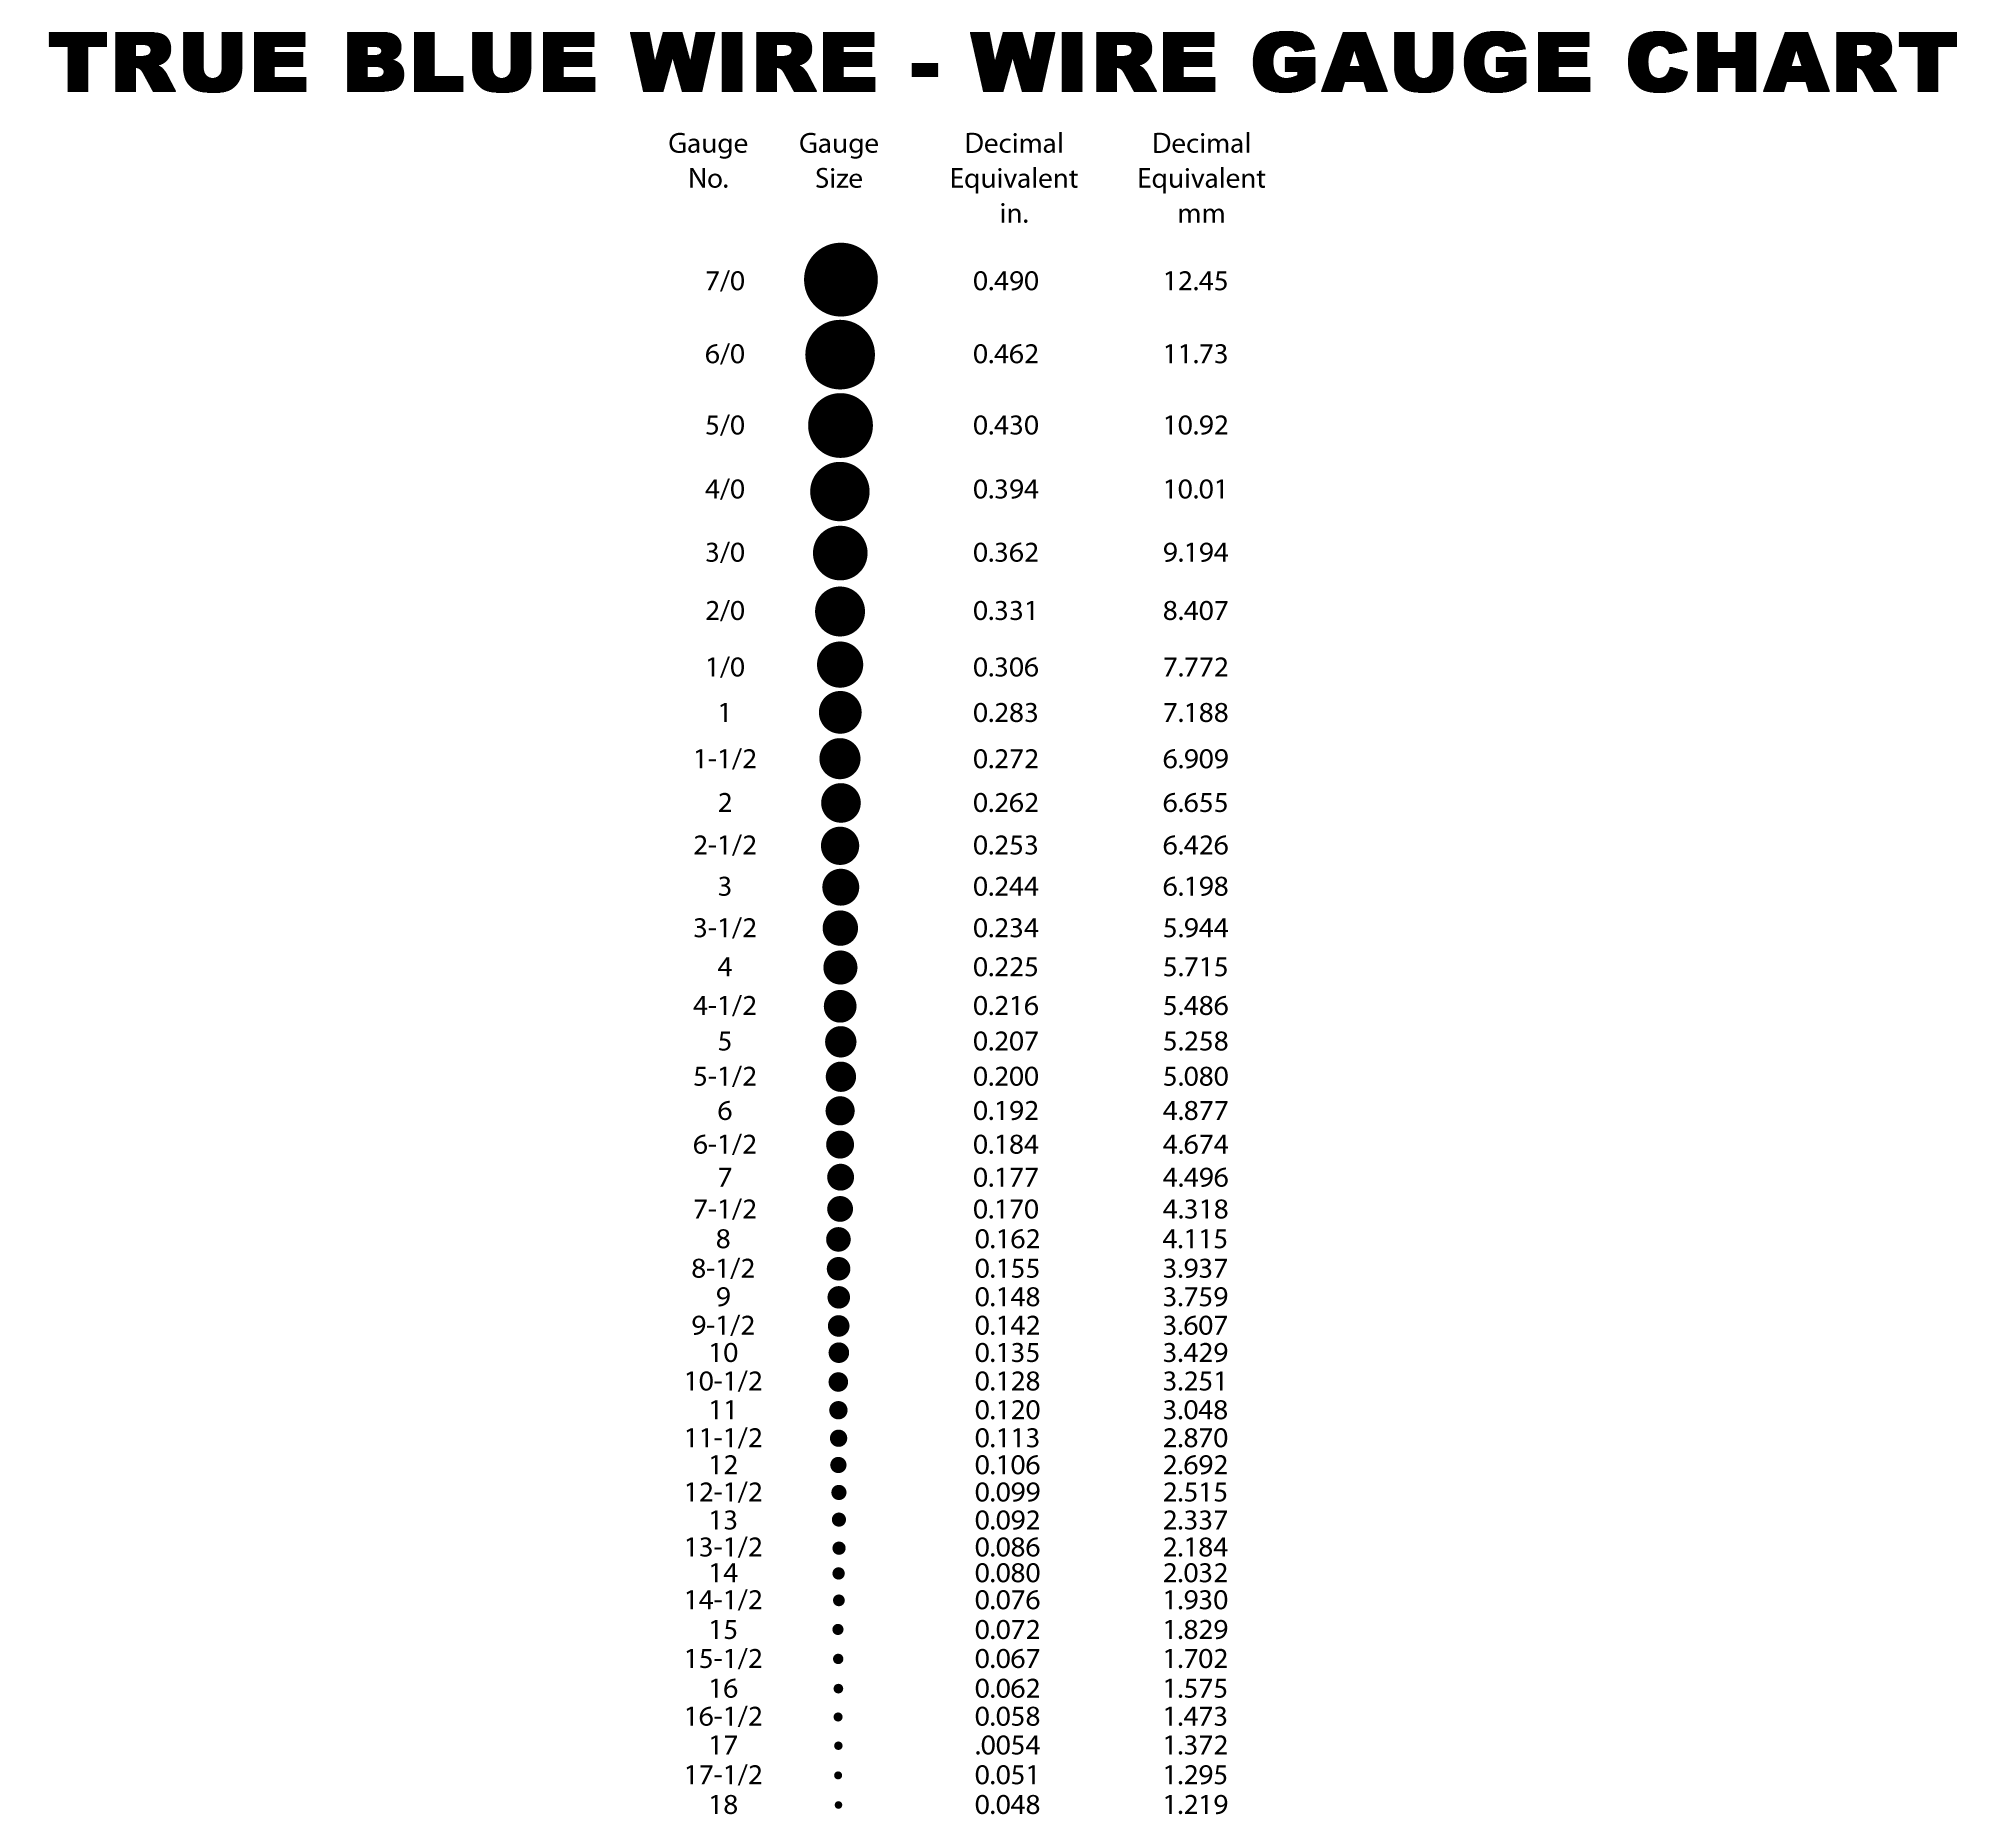 Custom wire stainless steel wire true blue wire gauge chart keyboard keysfo Gallery